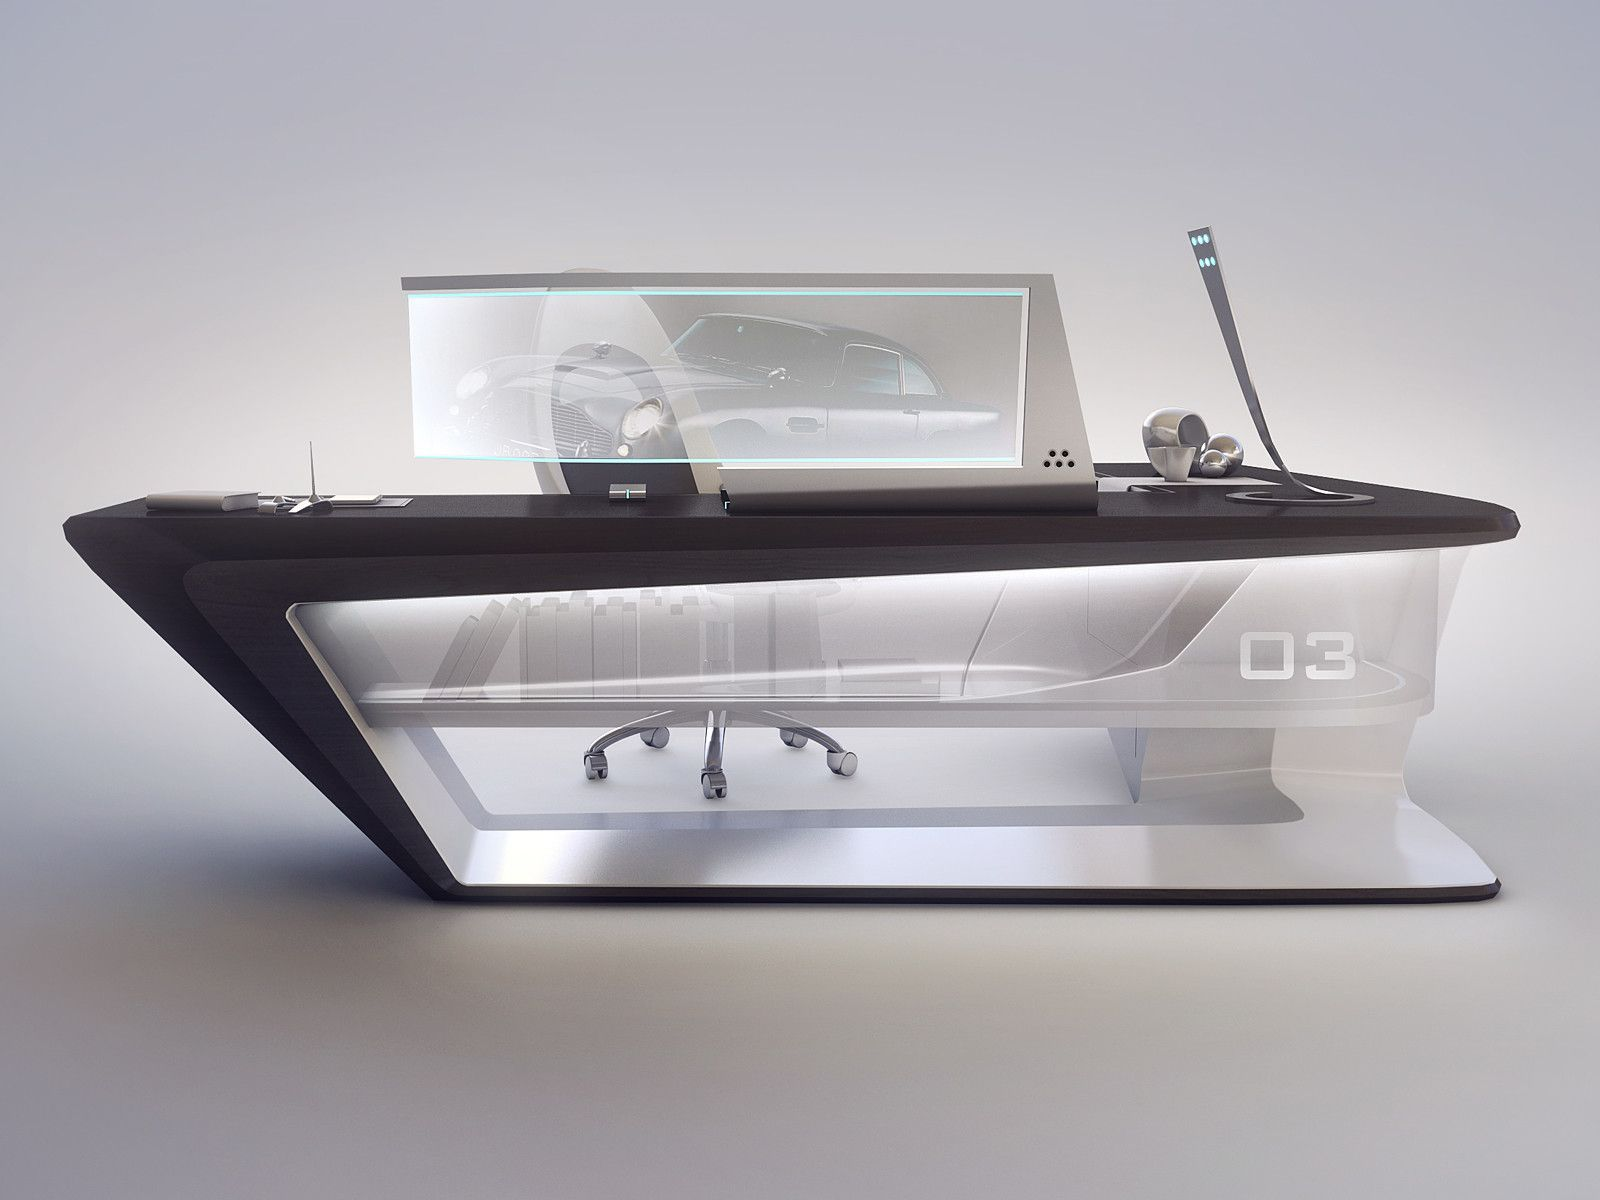 Cool Futuristic Furniture Modern Desk Design Dekor Pinterest Desks Modern And